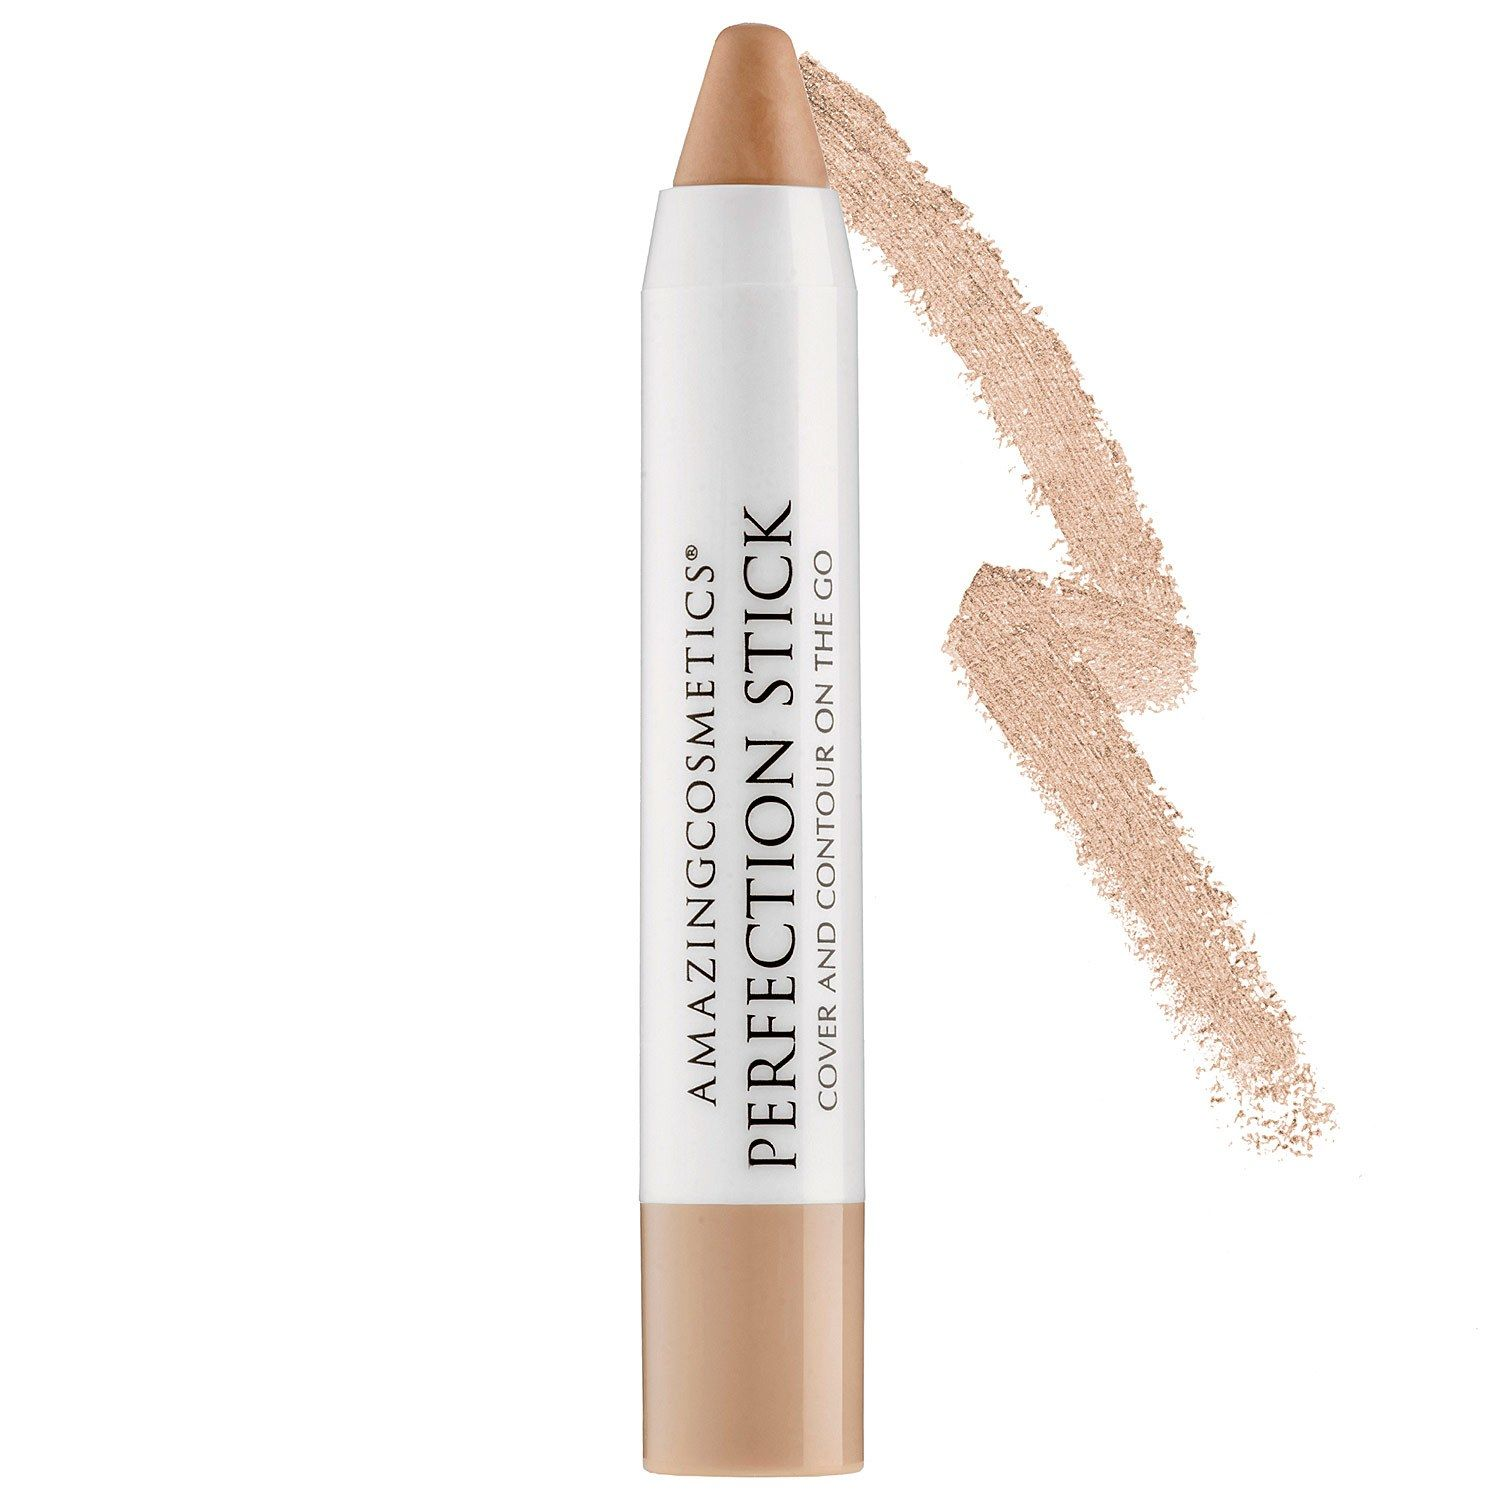 23 Concealers Sephora Shoppers Can't Stop Raving About